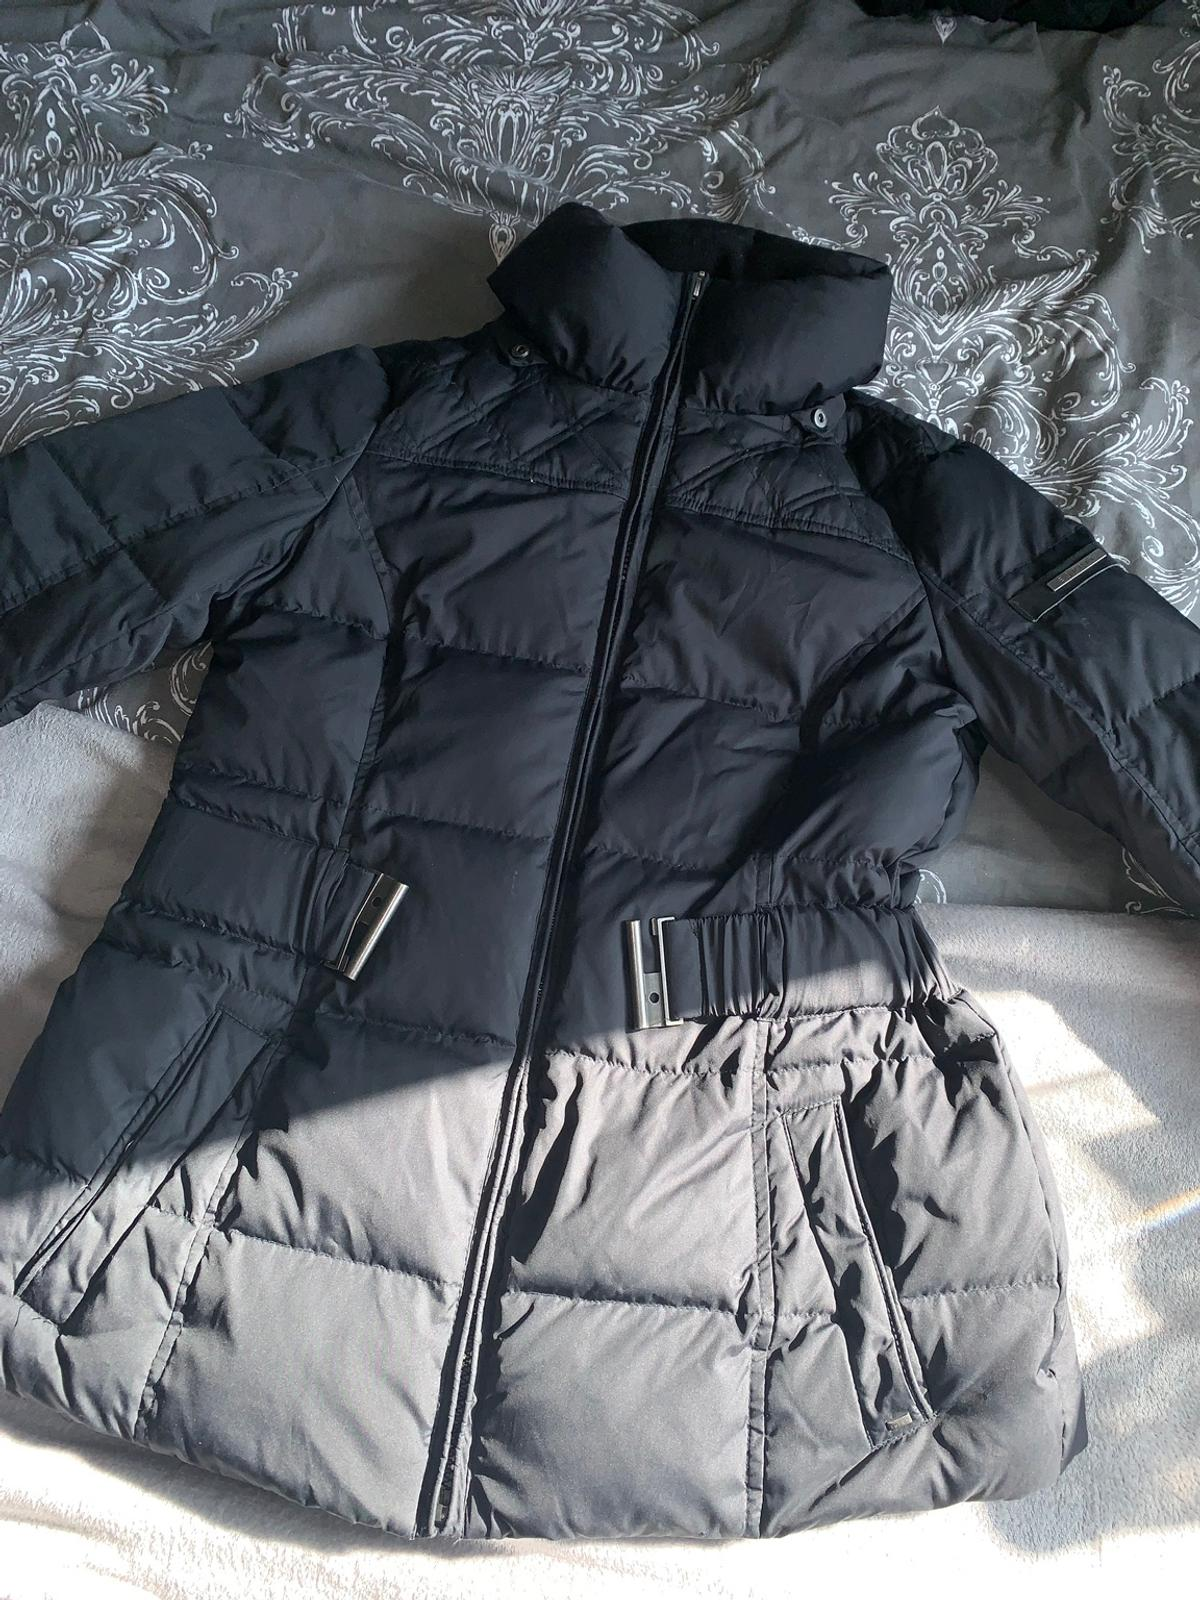 Size 12. bought from fenwicks. With detachable hood. Belt doesn't fasten as metal on one side is bent. Open to offers